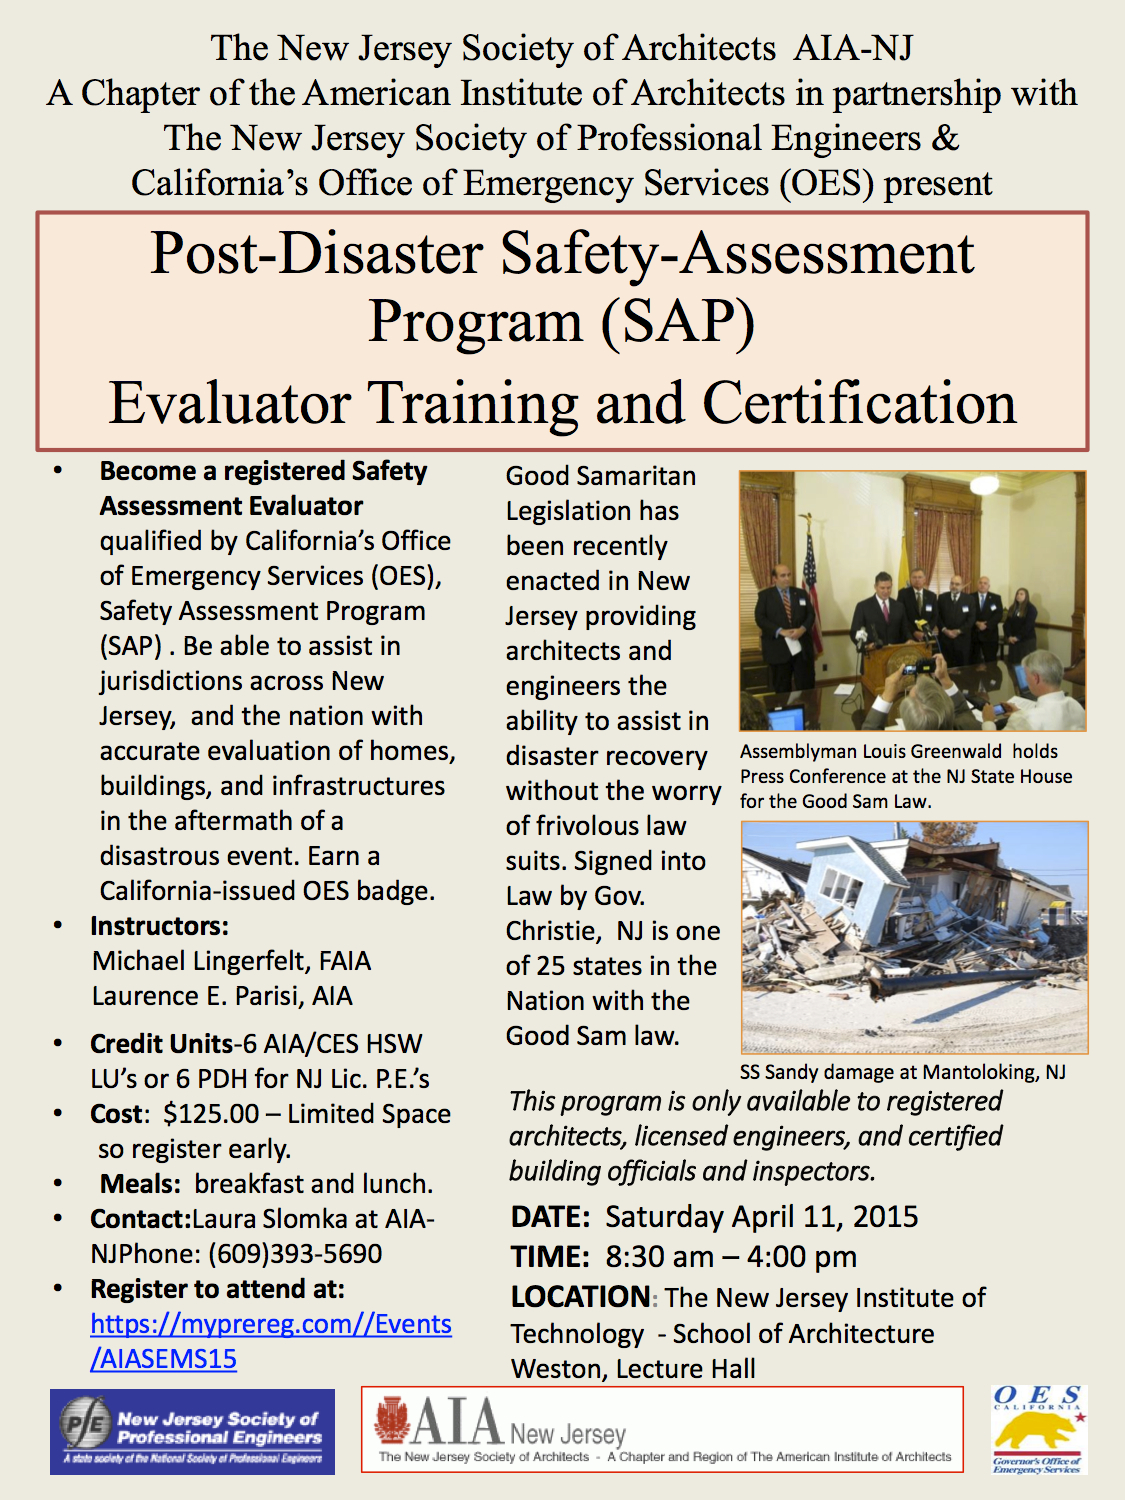 2015 Disaster Training Promo II with background color